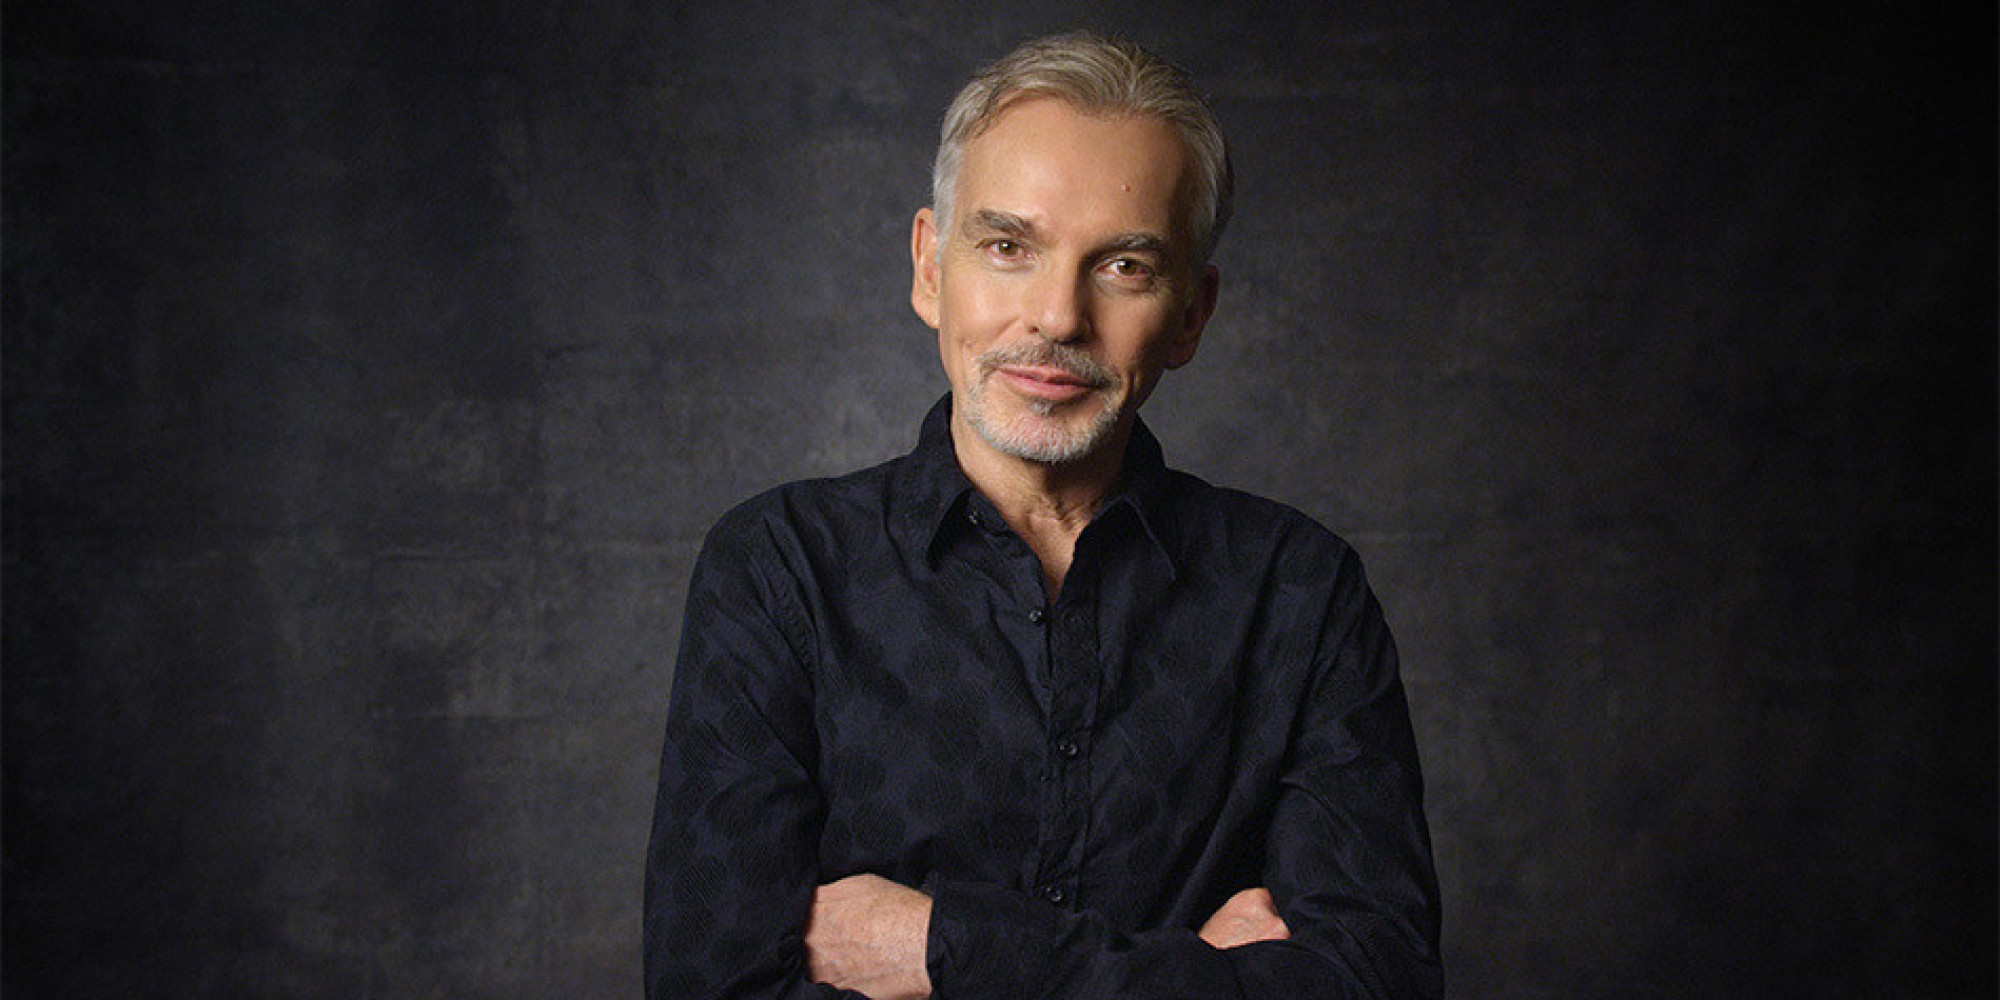 billy bob thornton 2017billy bob thornton fargo, billy bob thornton young, billy bob thornton angelina, billy bob thornton instagram, billy bob thornton 2016, billy bob thornton height, billy bob thornton angelina перевод, billy bob thornton wiki, billy bob thornton goliath, billy bob thornton фильмография, billy bob thornton bald, billy bob thornton movies, billy bob thornton 2017, billy bob thornton imdb, billy bob thornton tattoo, billy bob thornton twitter, billy bob thornton band, billy bob thornton net worth, billy bob thornton oscar, billy bob thornton wife